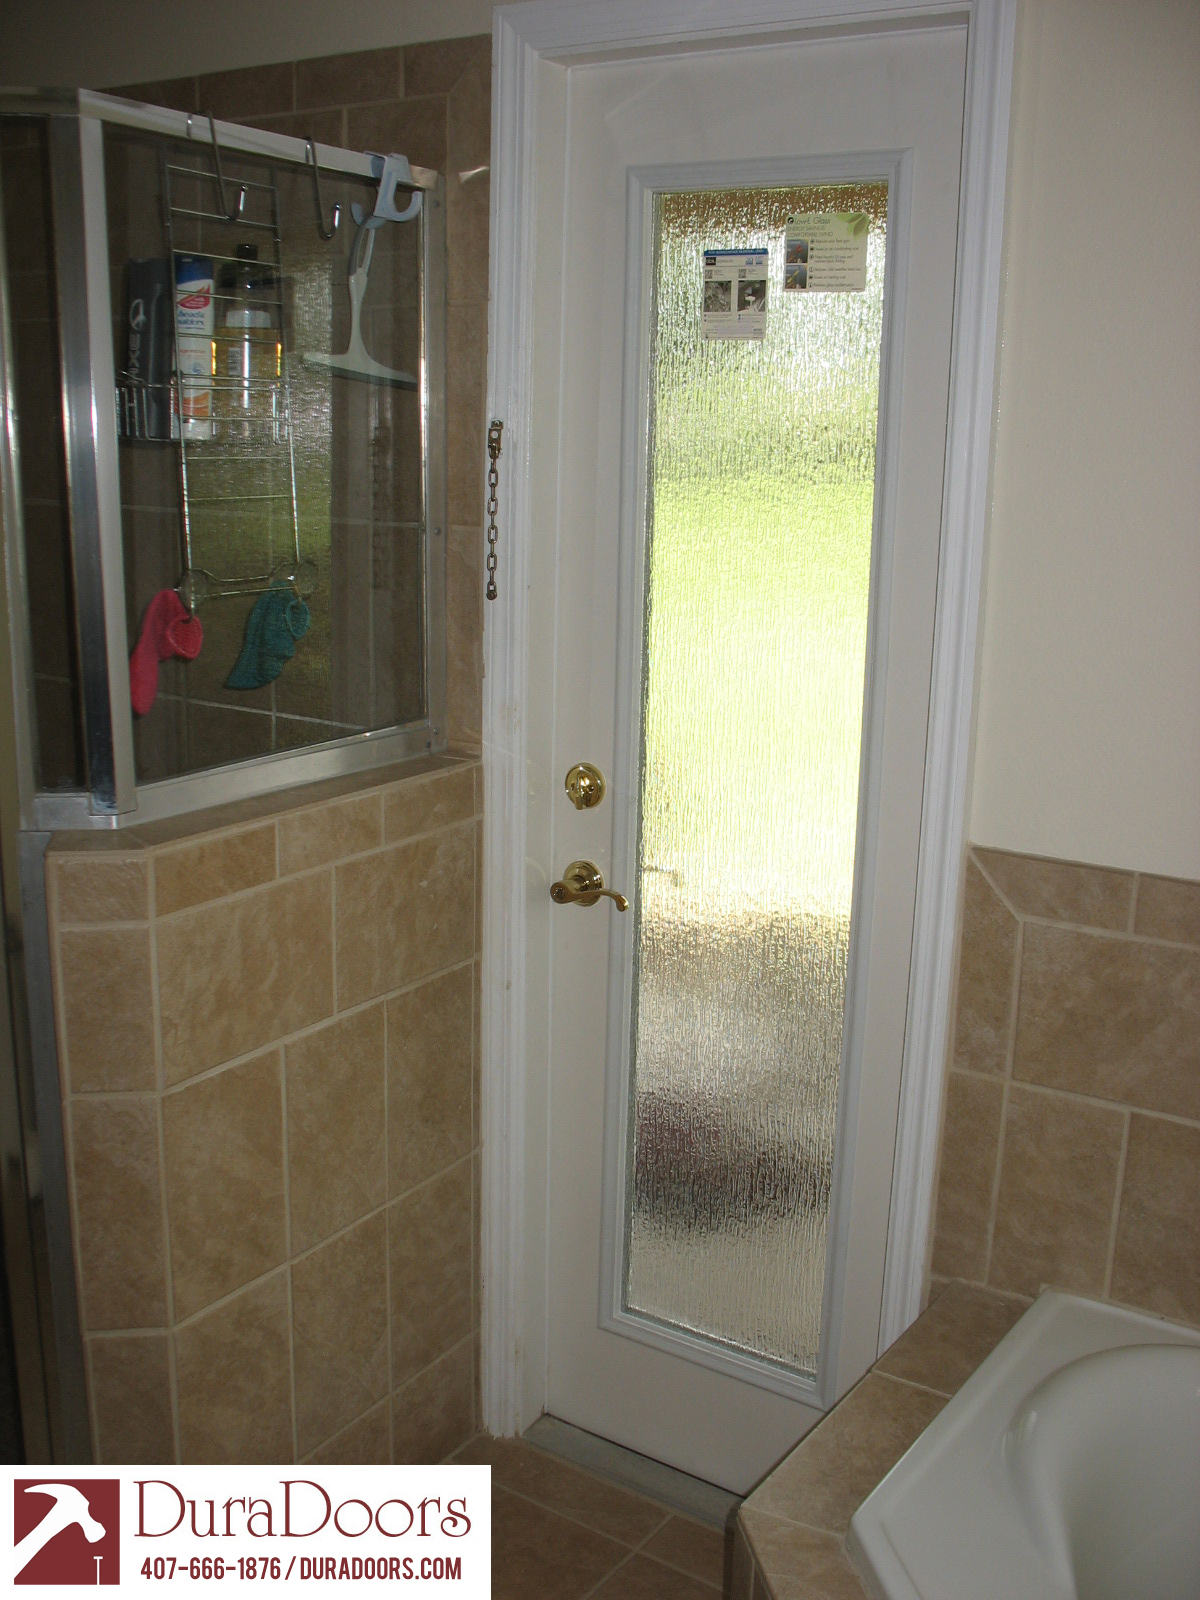 1600 #8C9437 Bathroom Door With ODL Privacy Rain Glass DuraDoors picture/photo Privacy Glass Doors 44591200